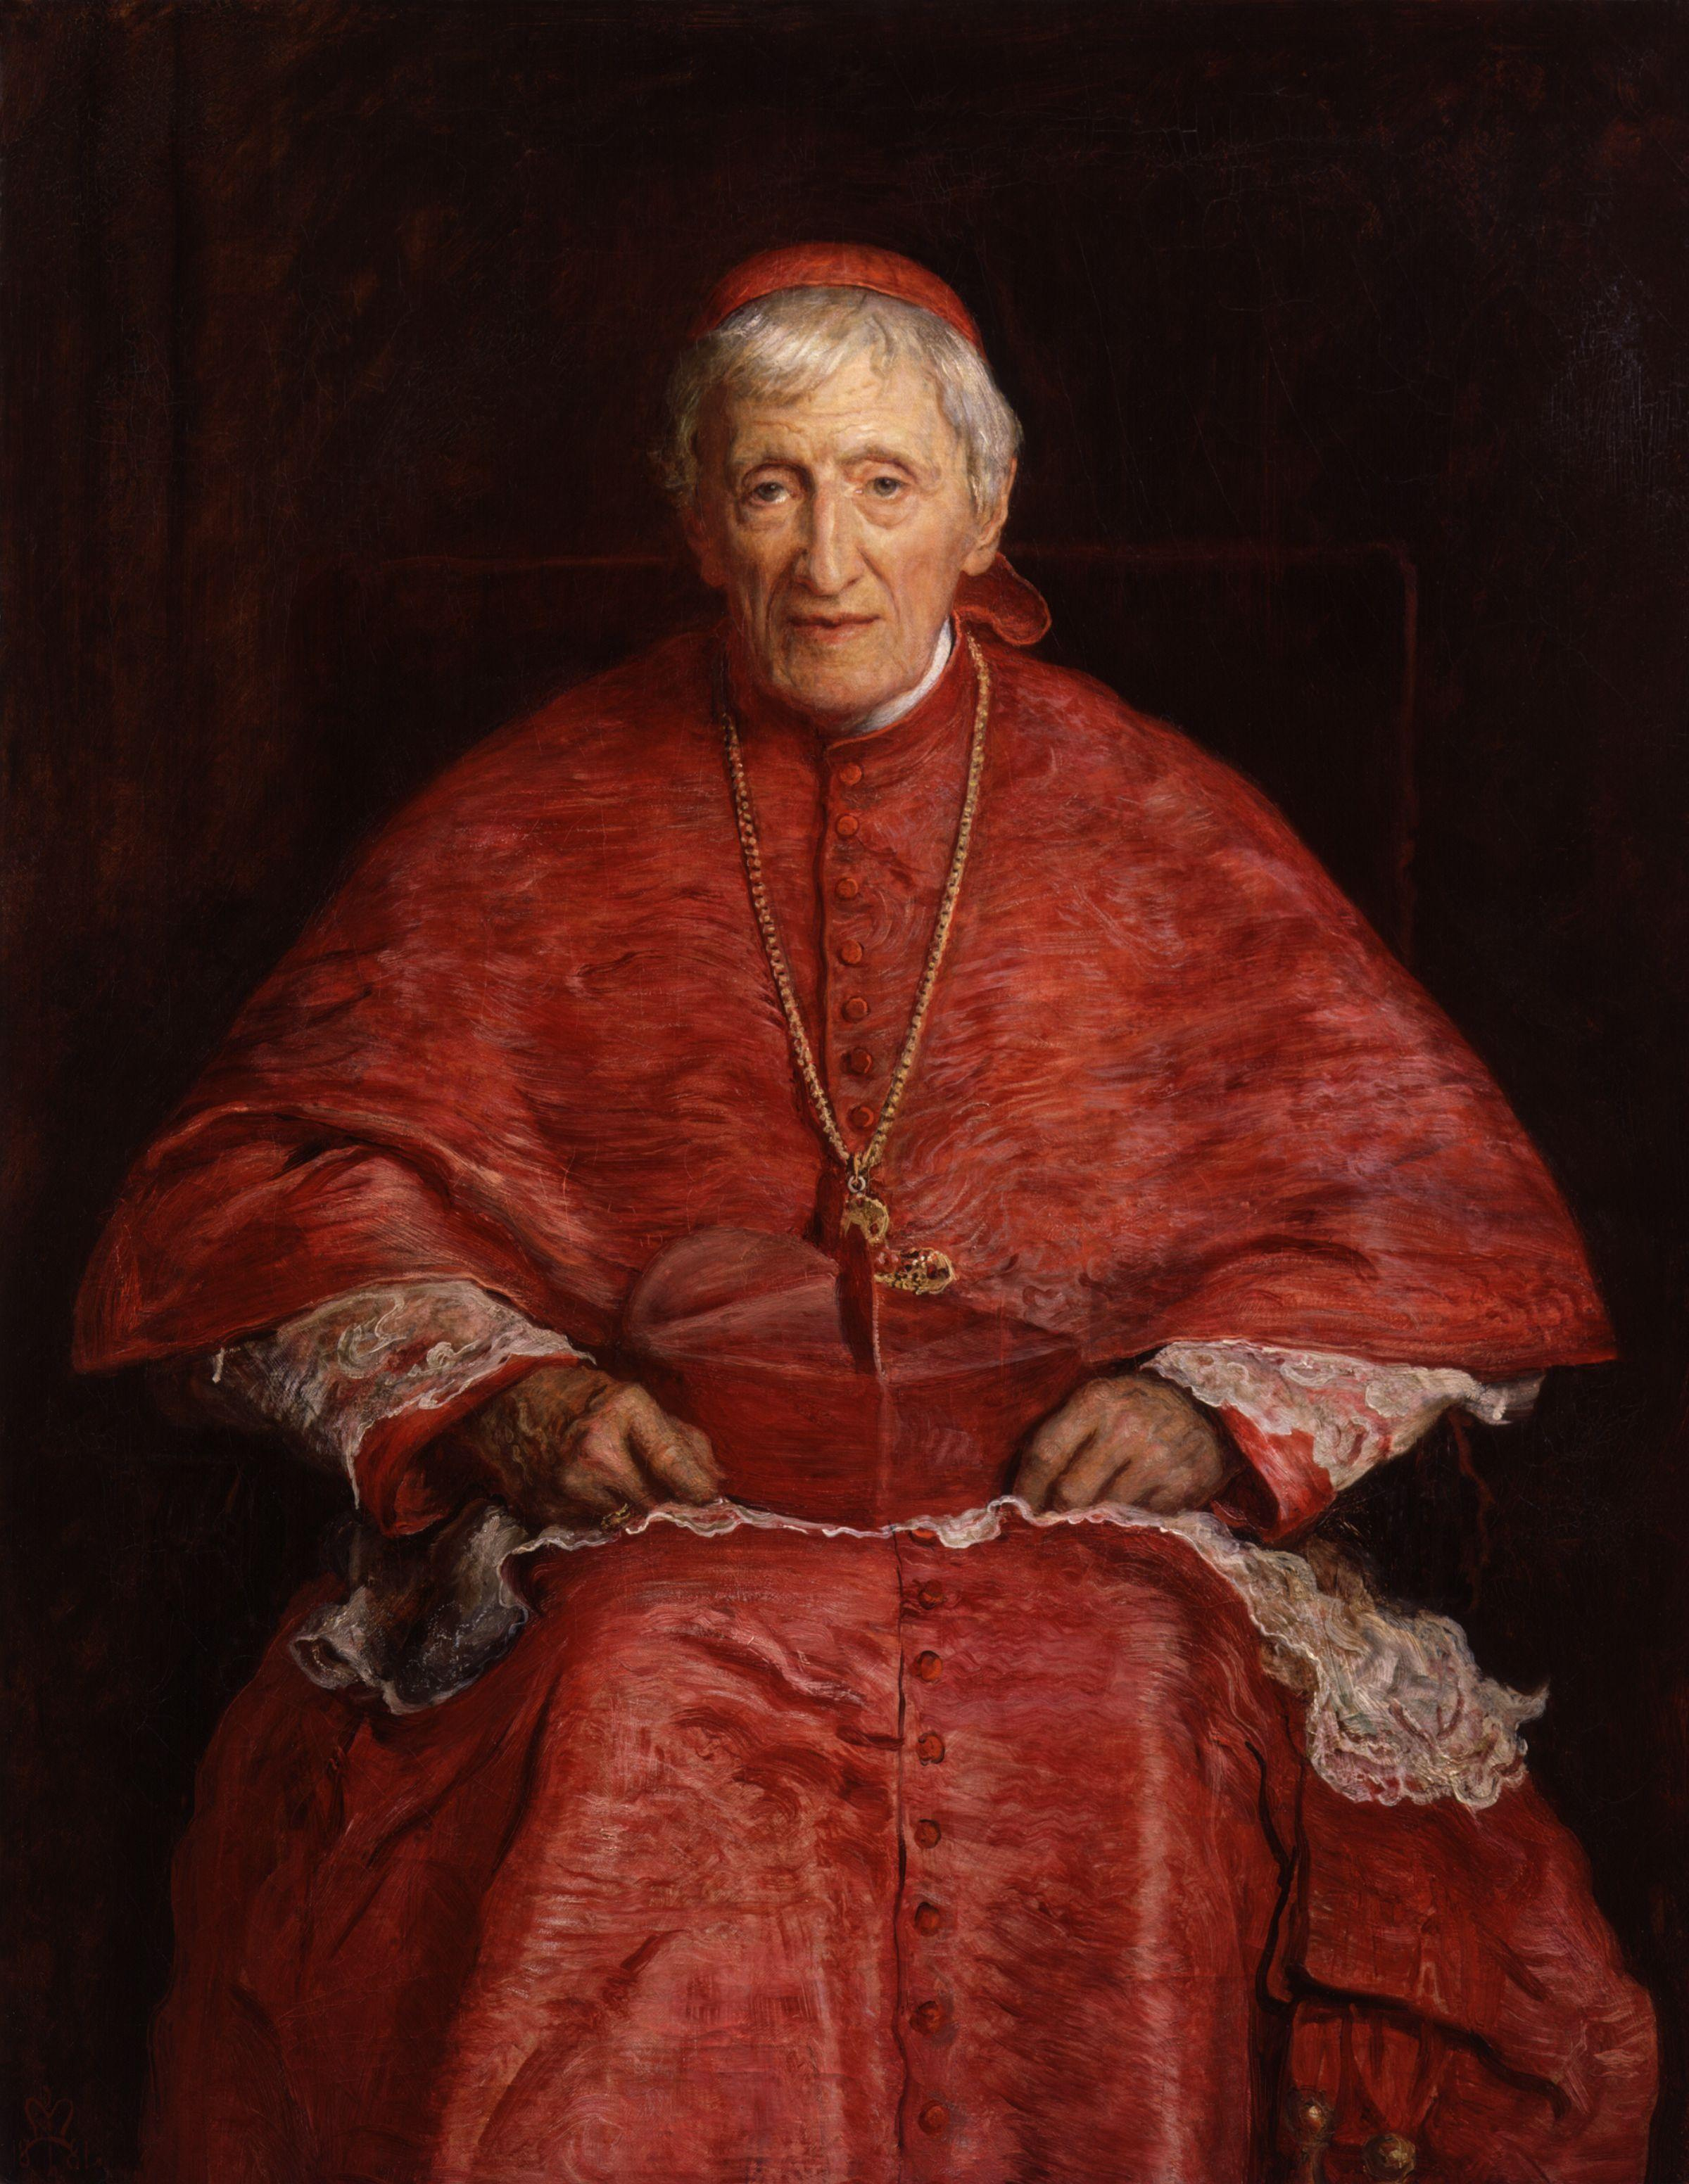 John_Henry_Newman_by_Sir_John_Everett_Millais,_1st_Bt